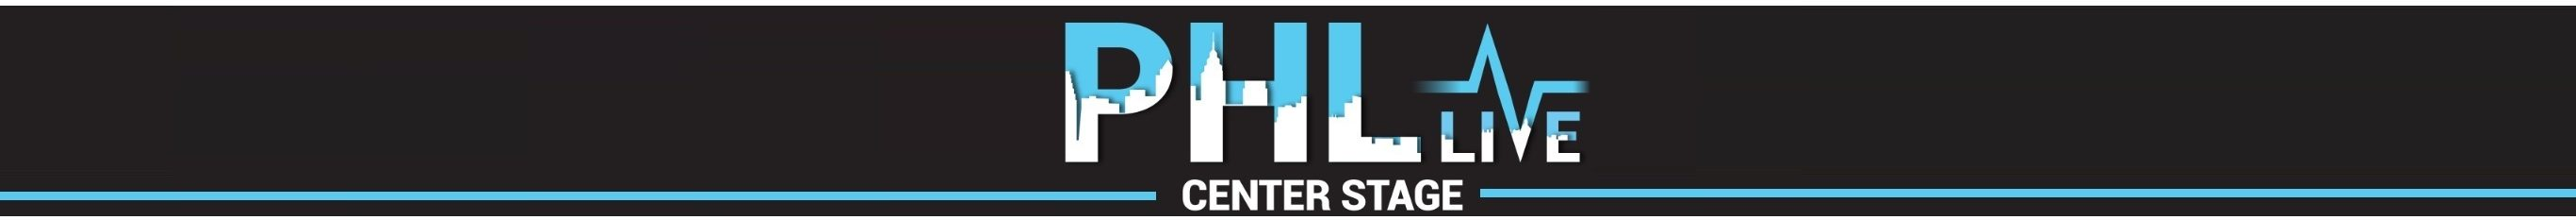 PHL LIVE Center Stage